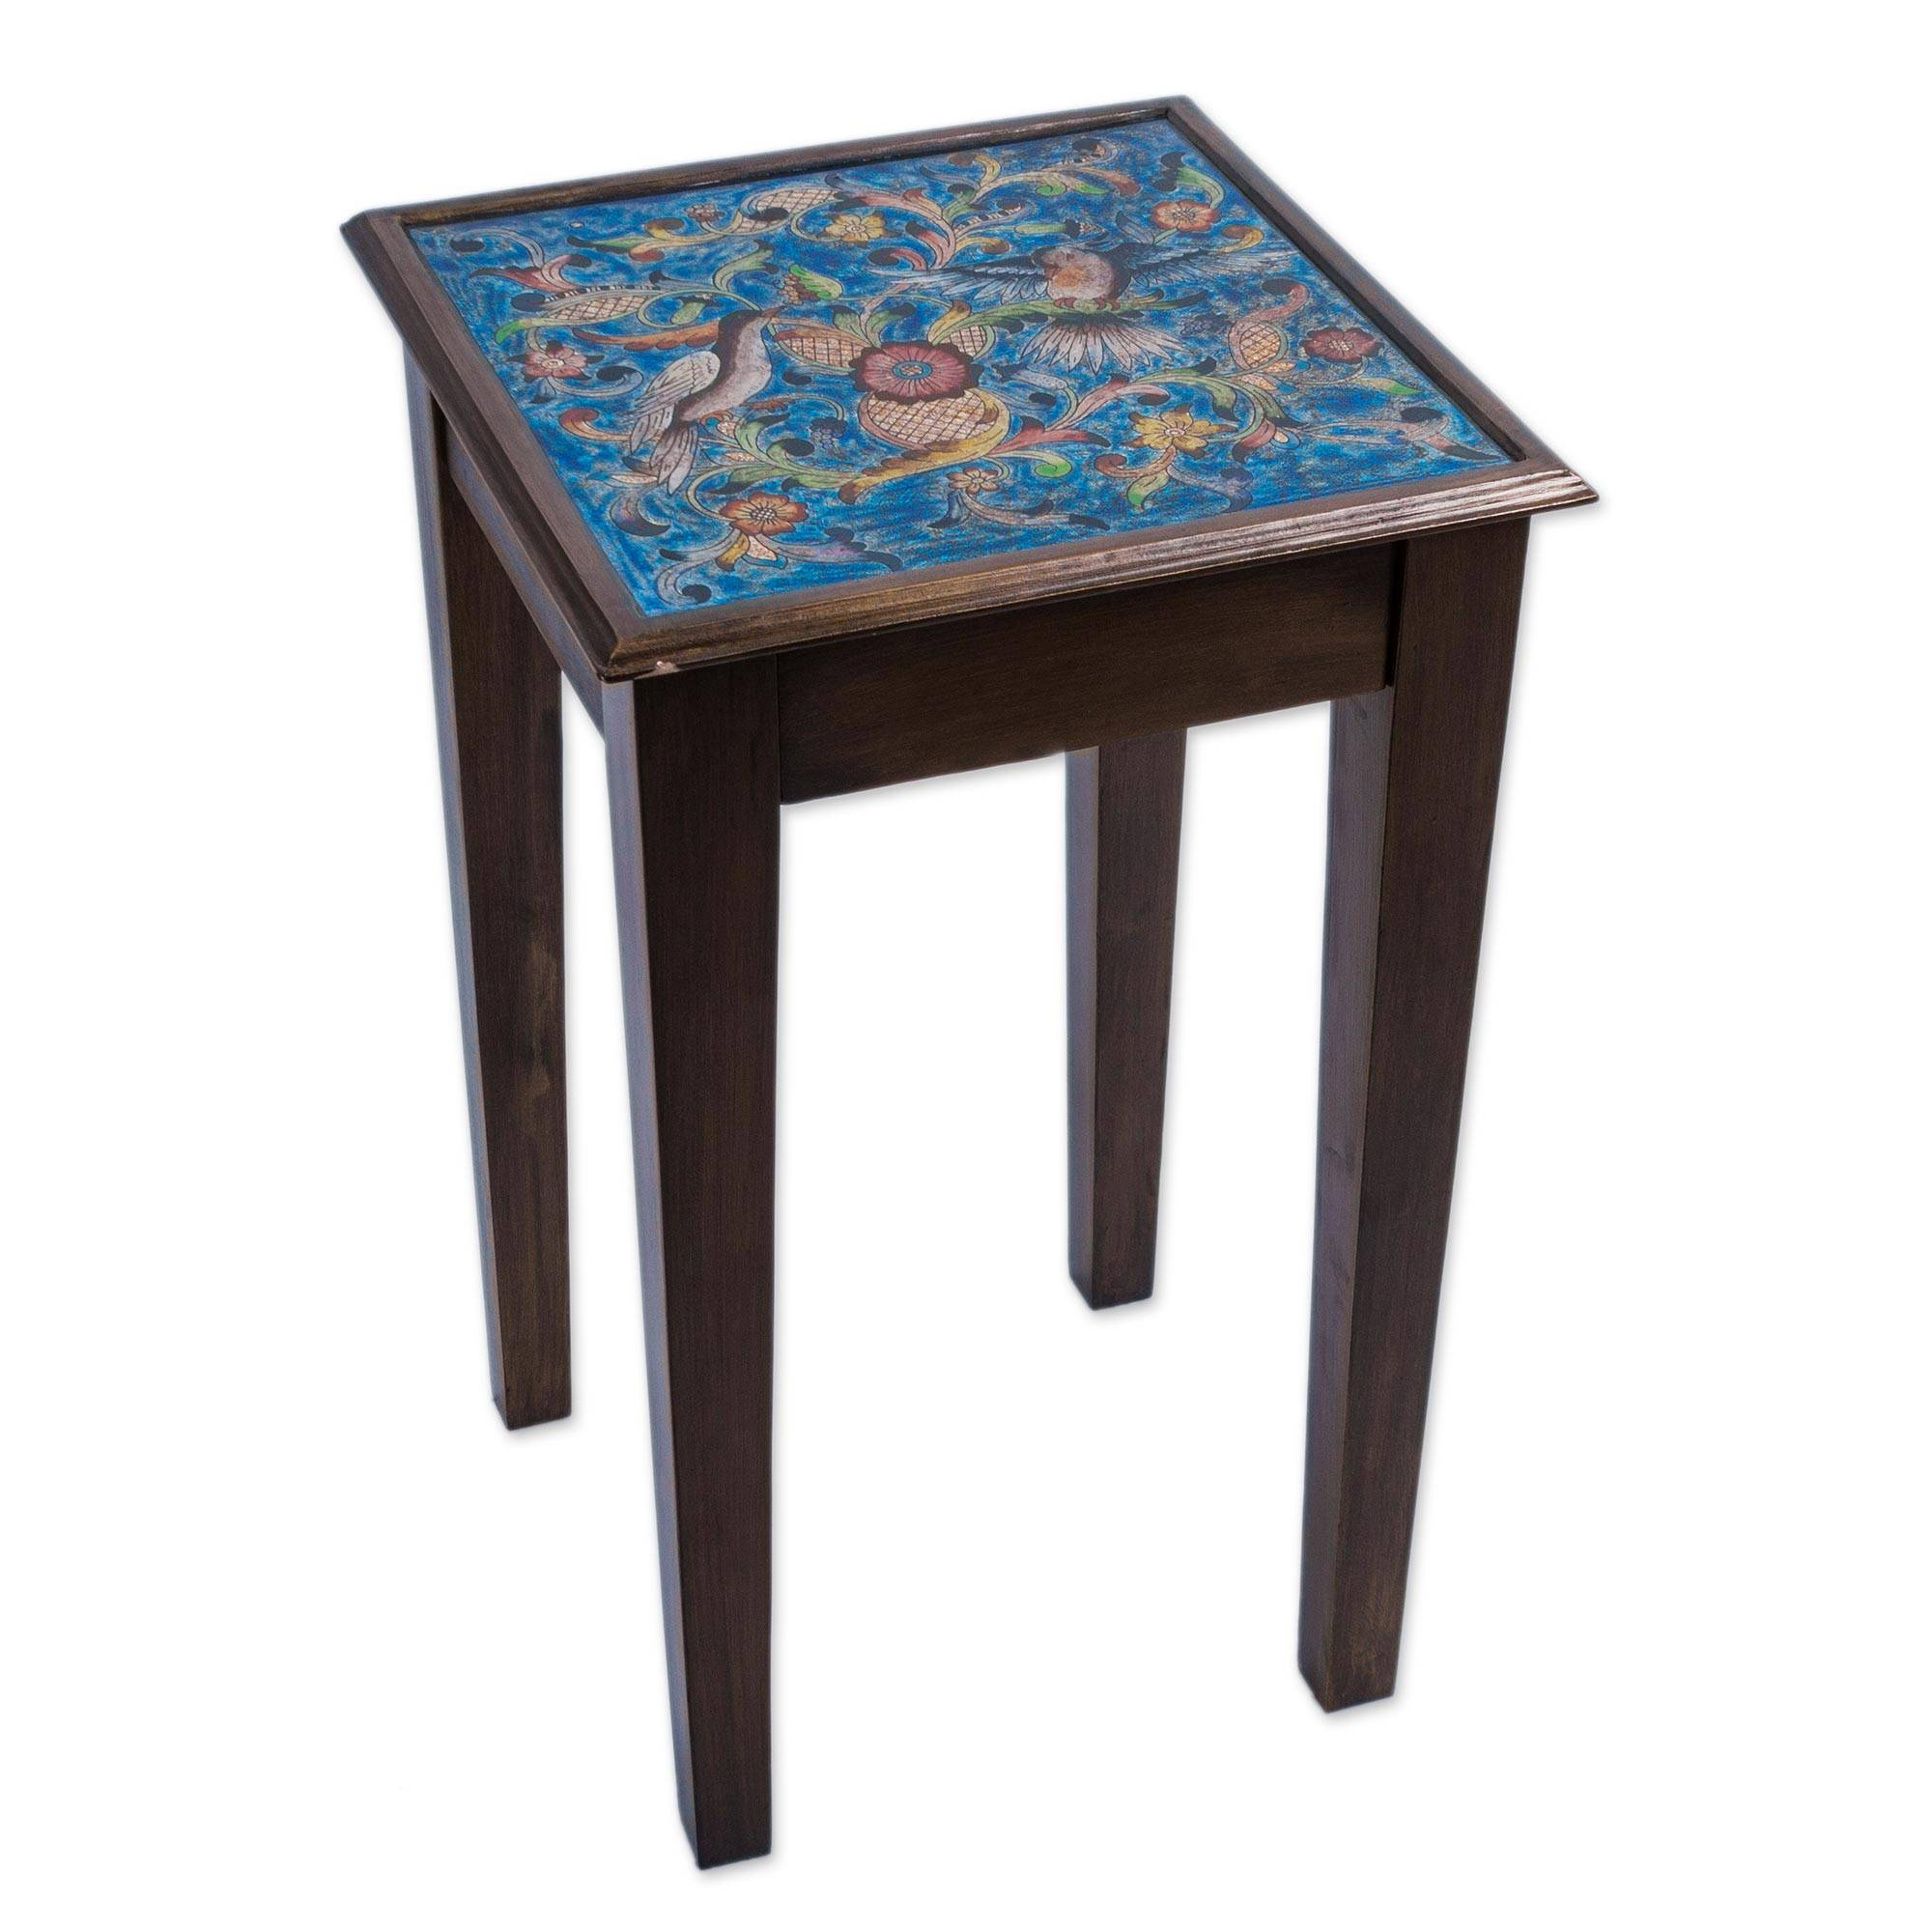 hand painted glass top wood accent table birds the heavens novica sofa console chest drawers matching side tables with umbrella hole hairpin leg barn doors house bedroom lamp sets